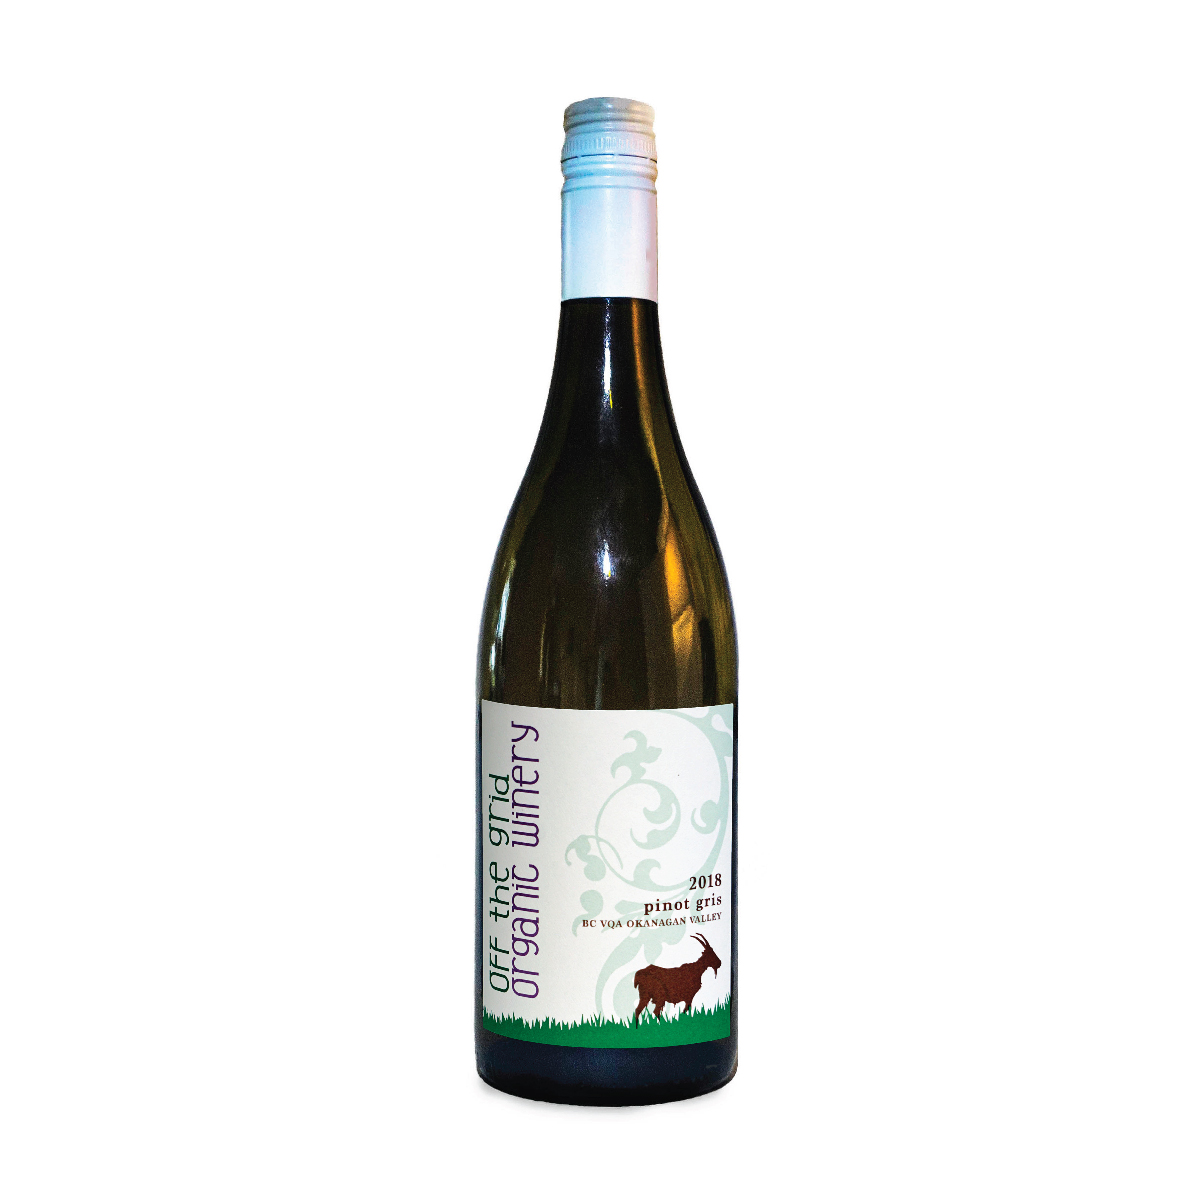 2018 Pinot Gris - $24.00This Pinot Gris shows green apple, pear, citrus zest and a light minerality. Pair this wine with all sorts of cheeses both rich and creamy. Summer salads with fruit and nuts, white meats and seafood.